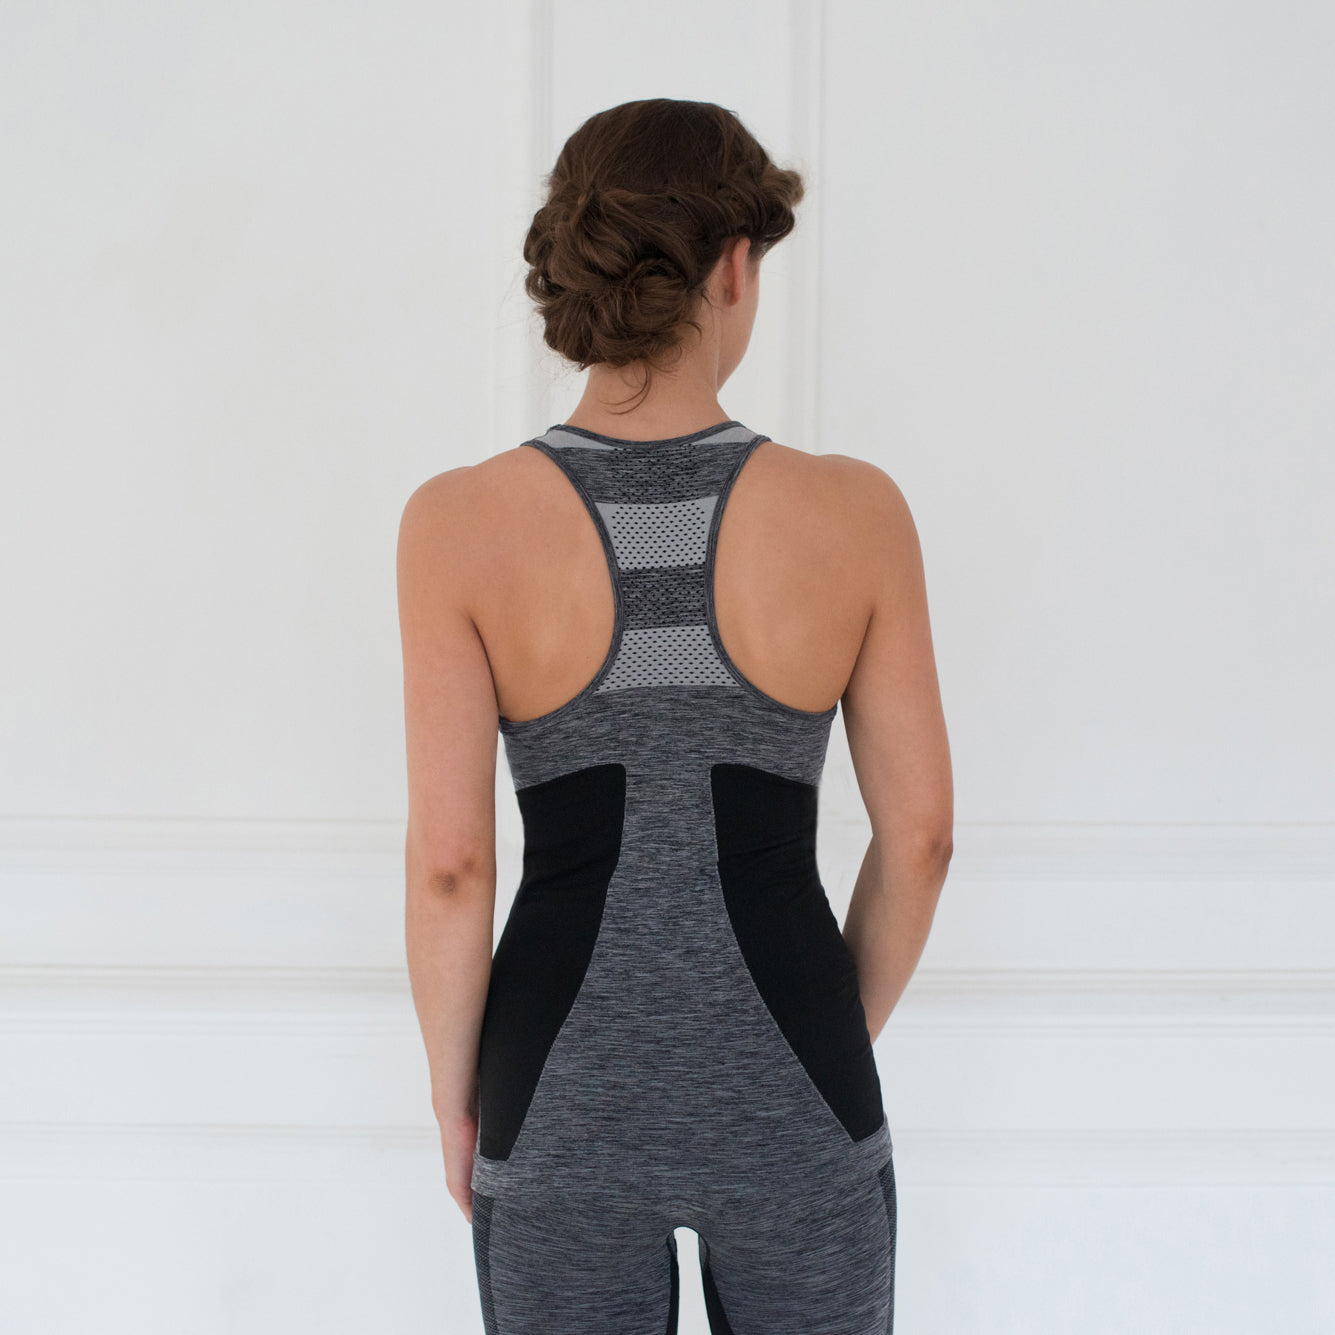 Super Flattering Seamless Gym Vest - Genius - Grey Marl / Black Stripe